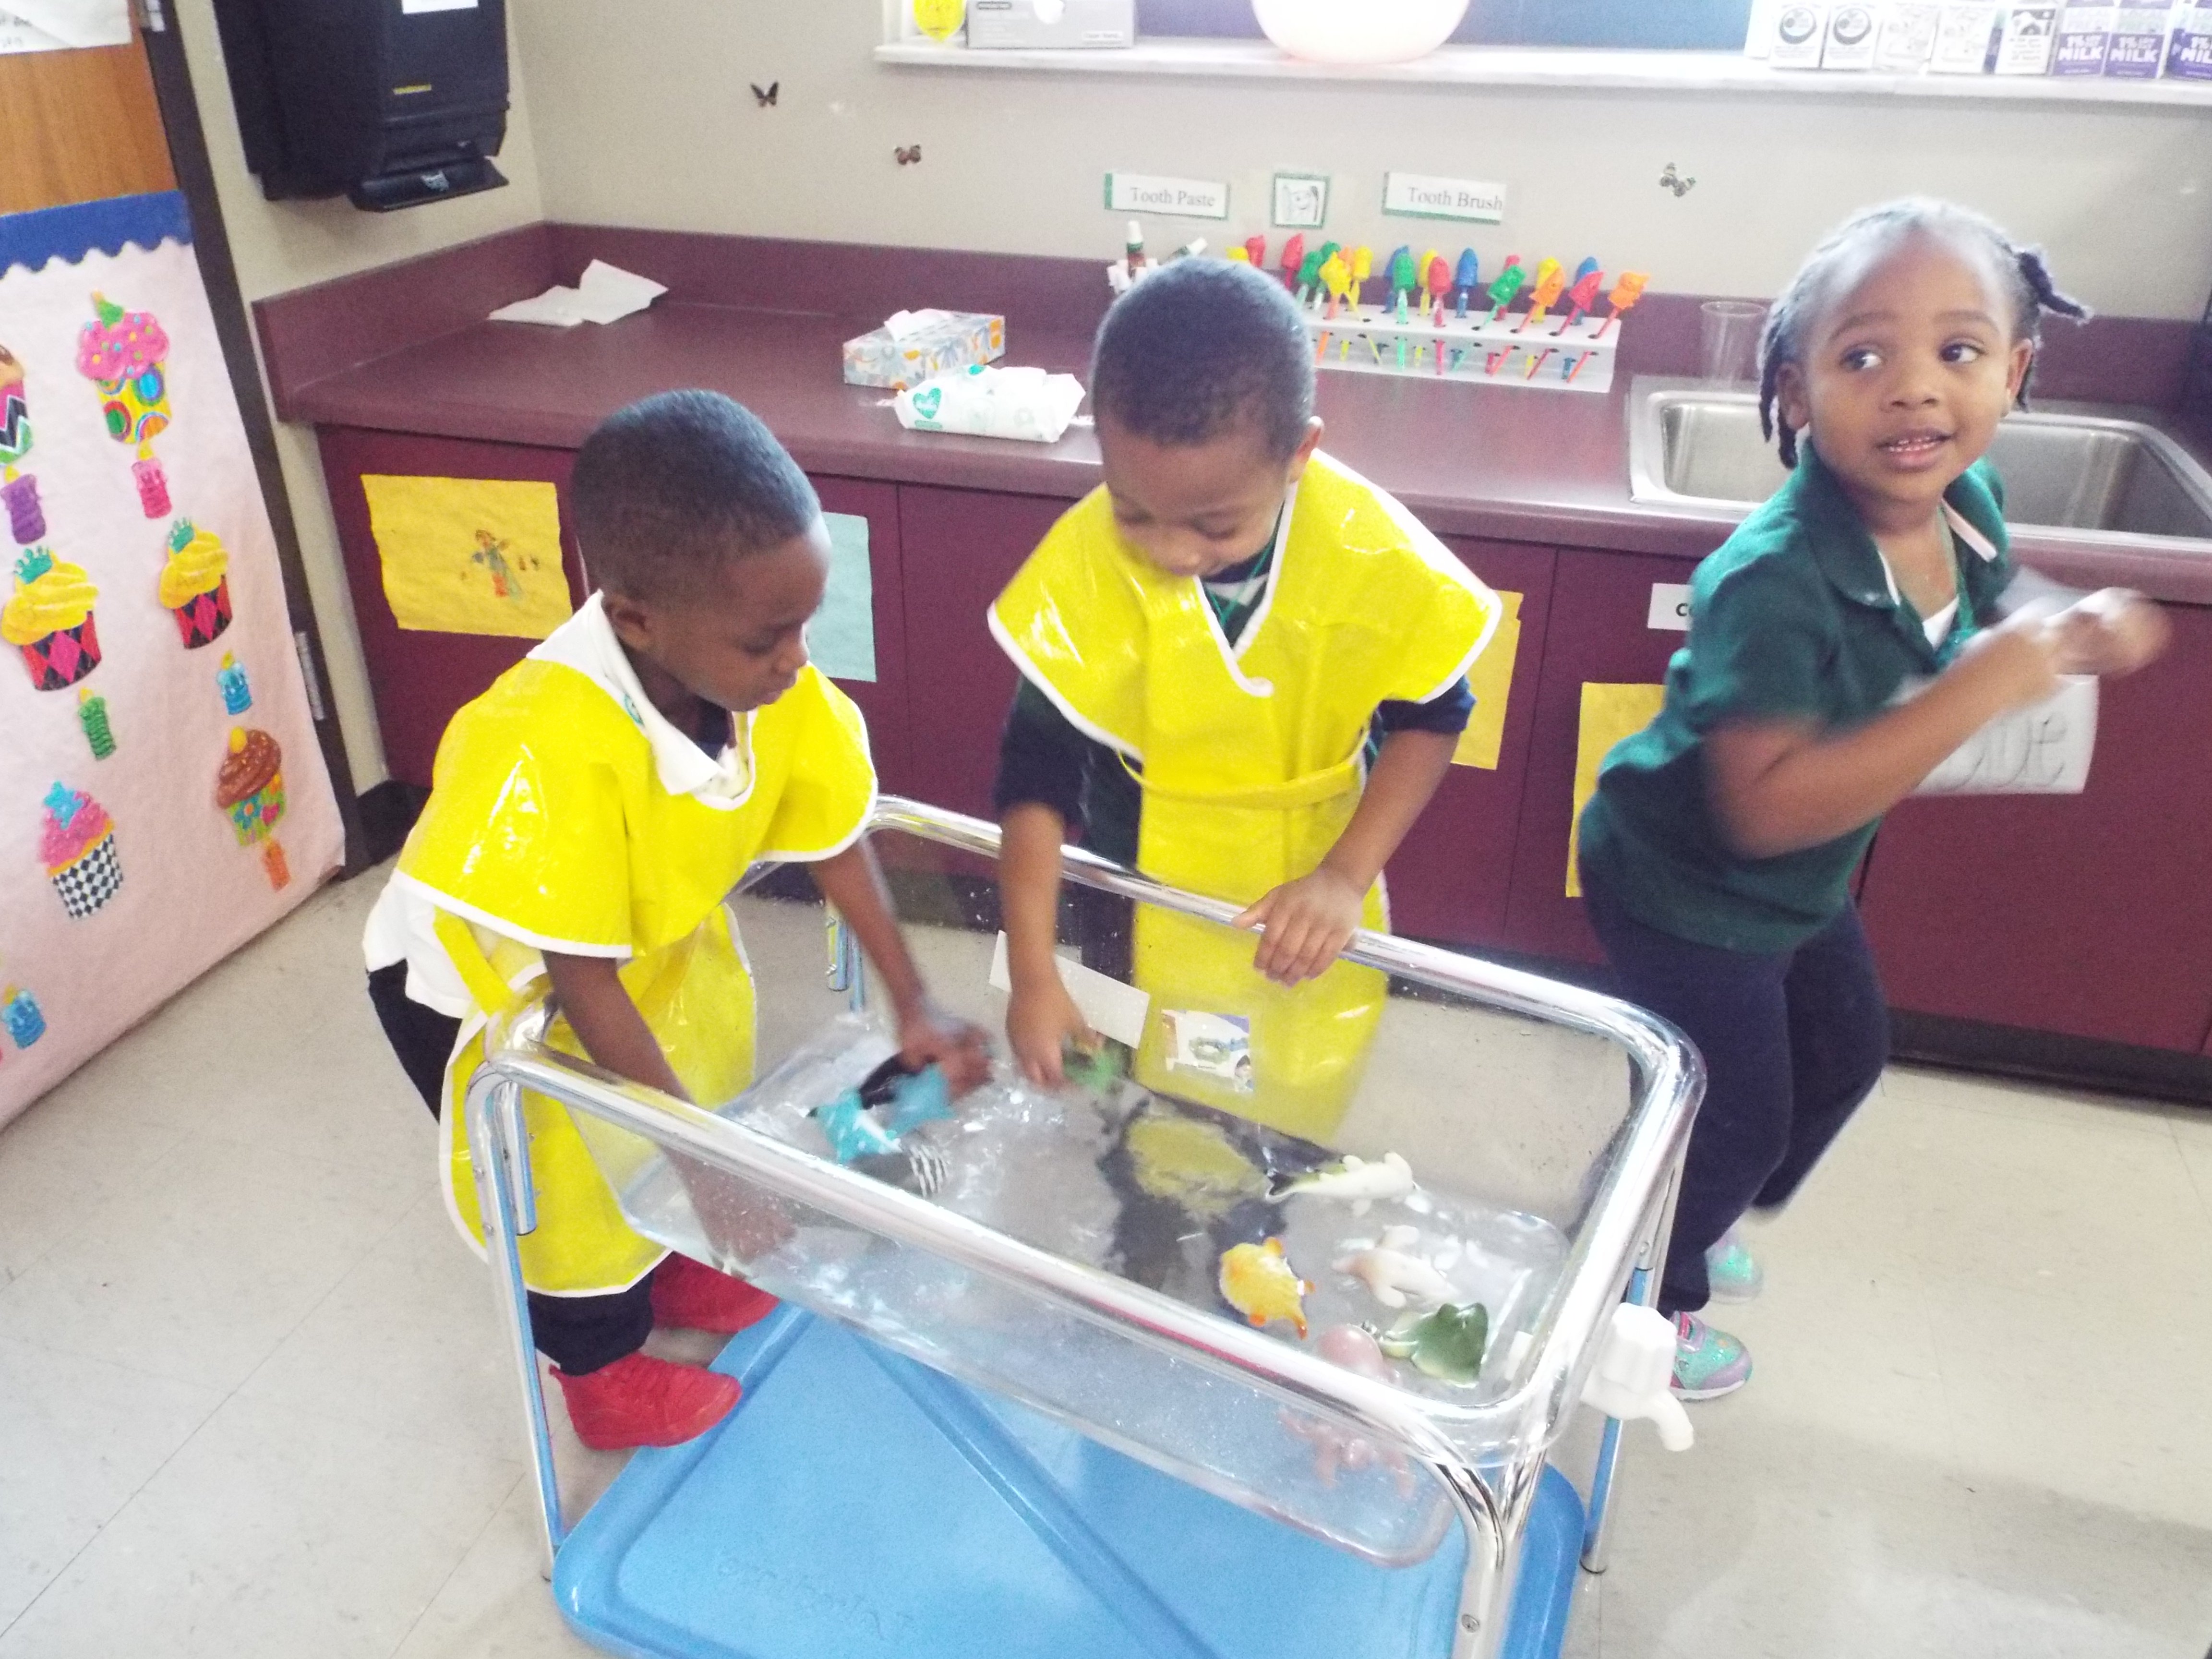 """Two boys splash in the """"ocean,"""" a large aquarium-like container half-filled with water and tiny plastic sea creatures, in a prekindergarten class at Lucie E. Campbell Elementary in Memphis."""